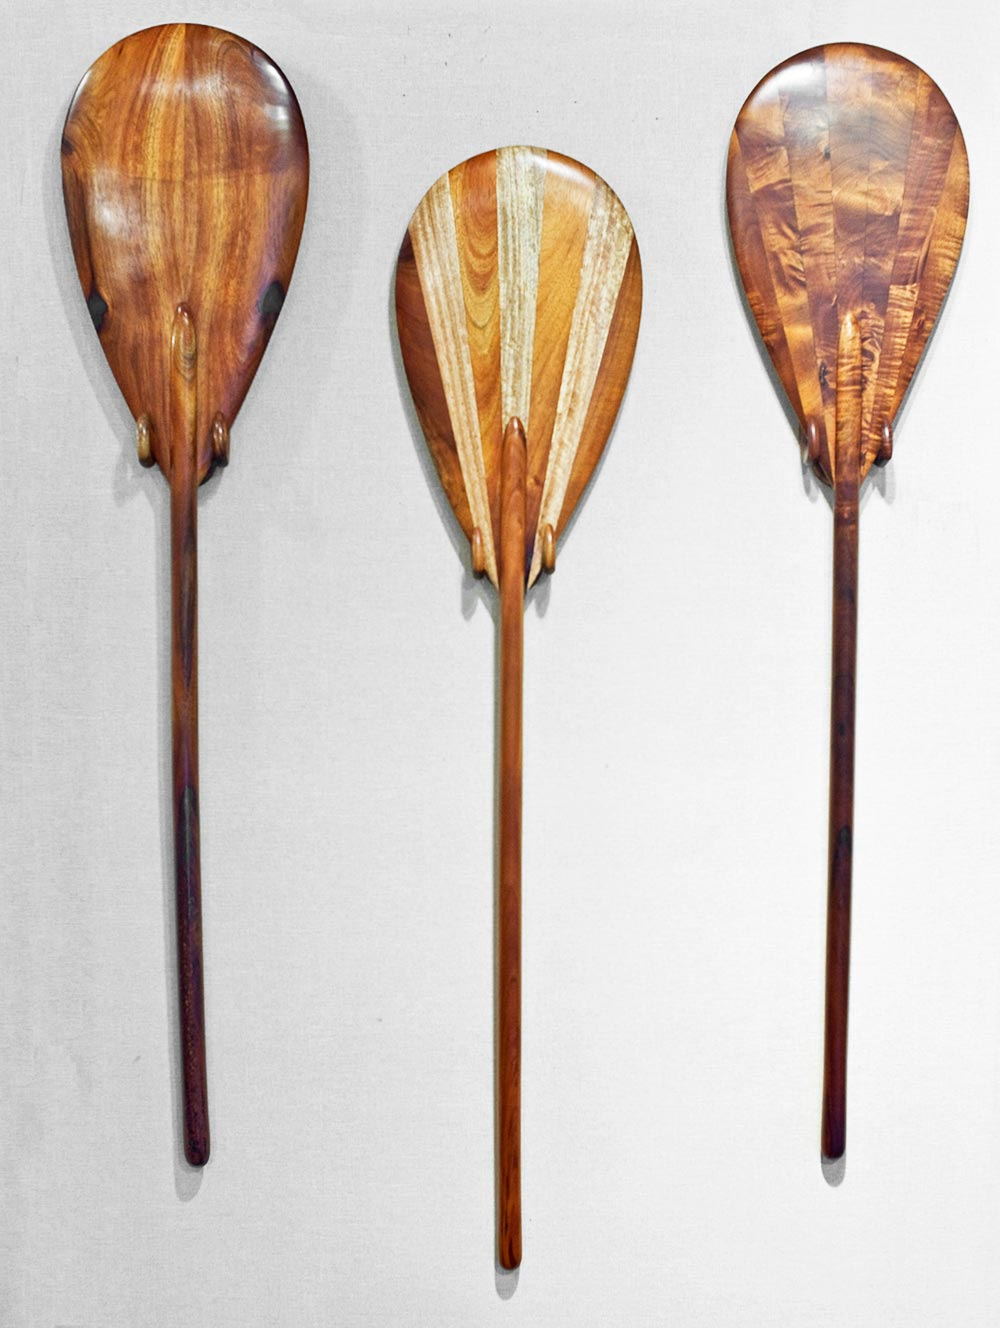 Traditional Hawaiian Racing Paddles by Bob Getzen